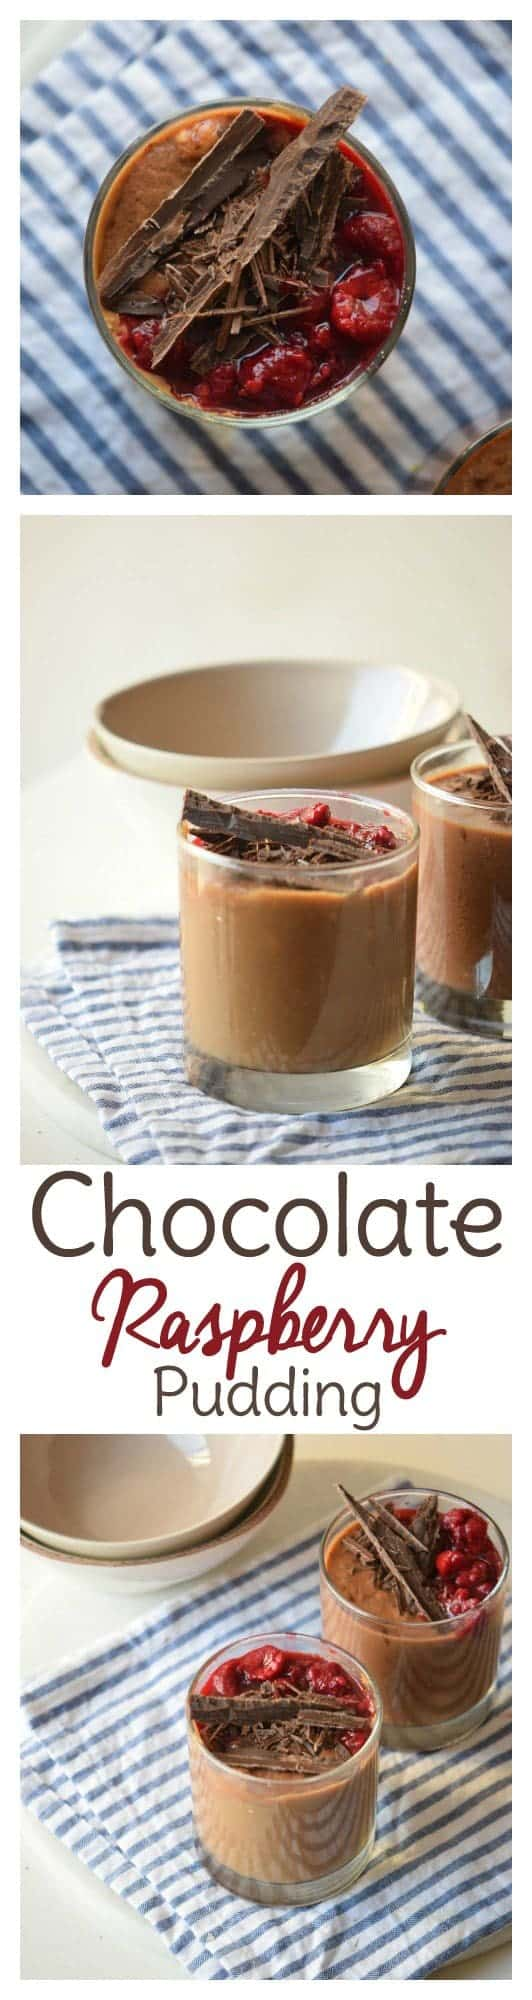 Chocolate desserts don't have to take half the day to make. Try this <a href=